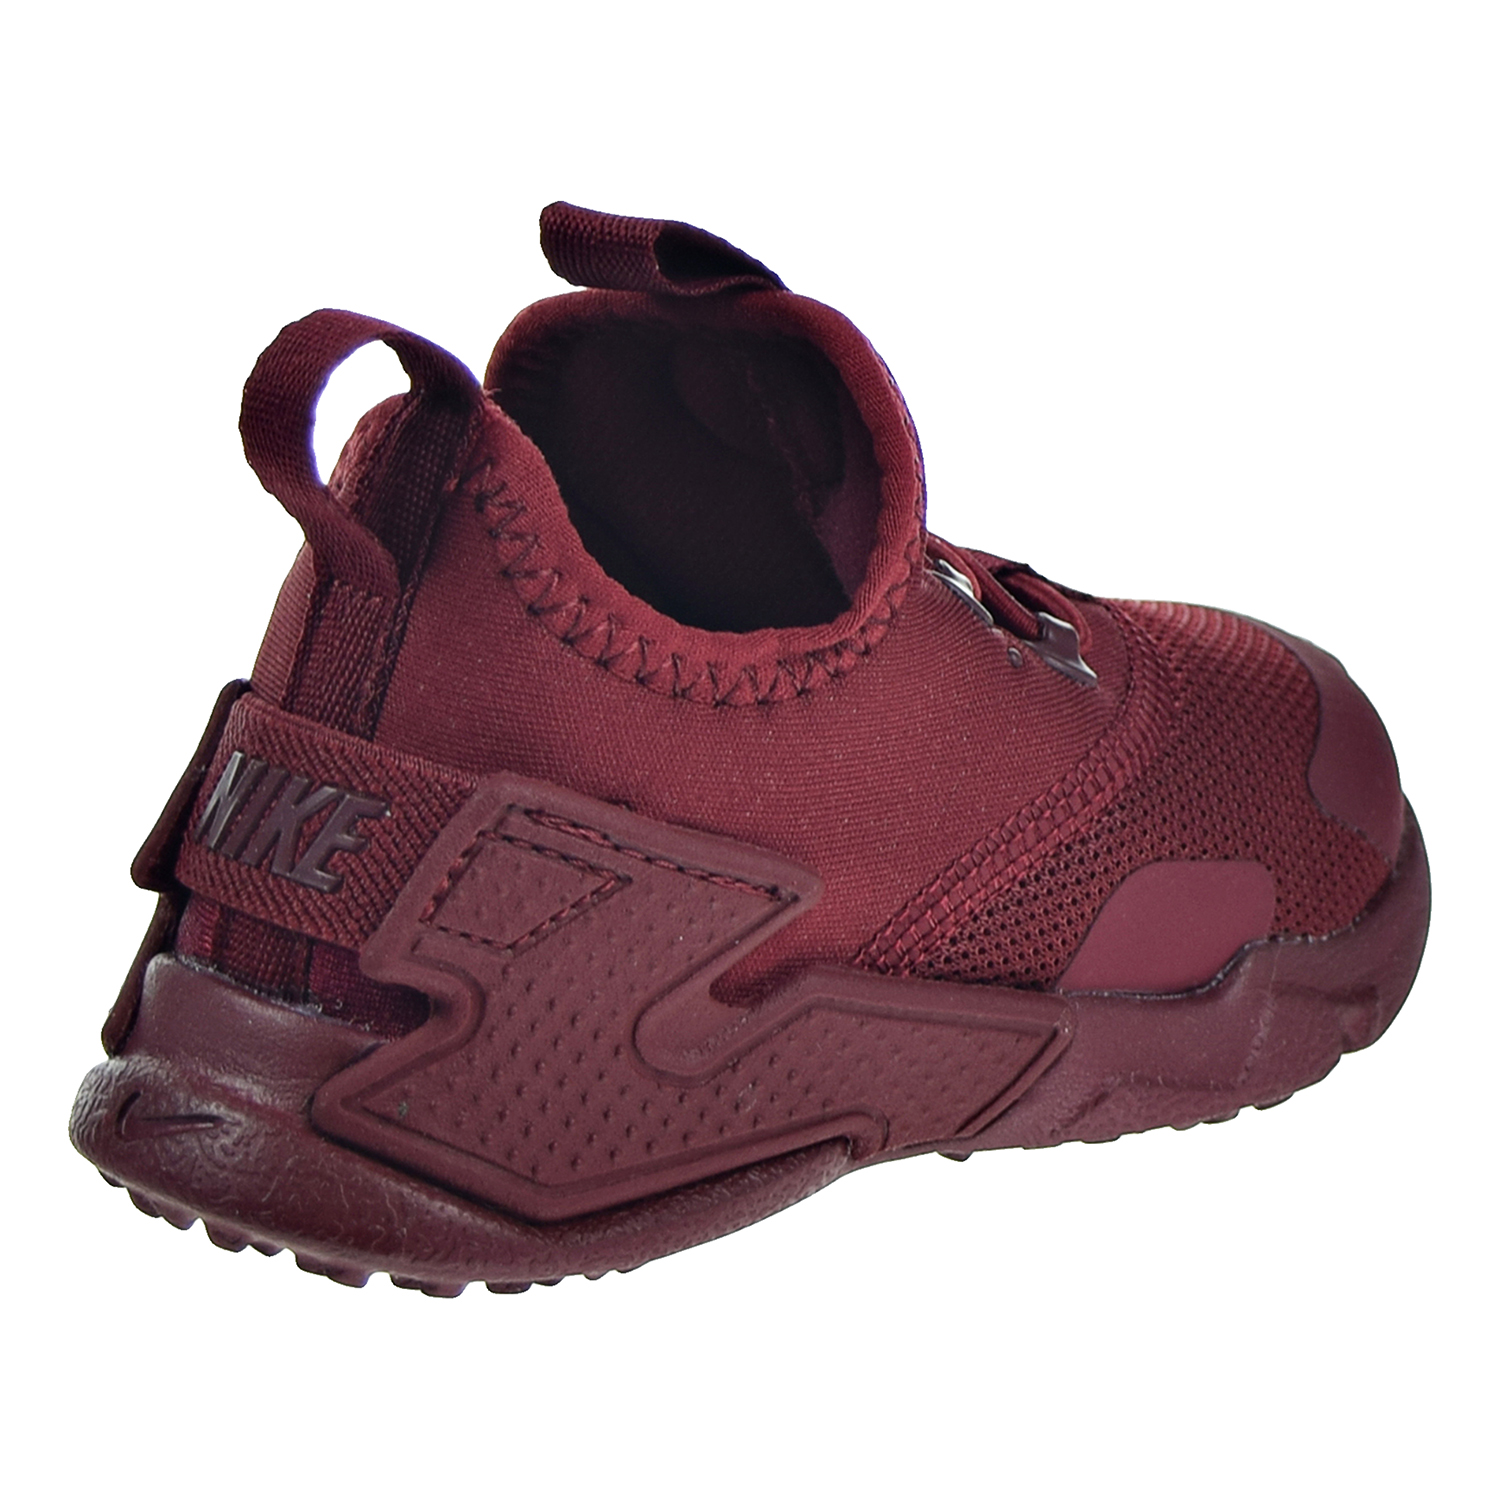 39c789ee54 Nike Huarache Drift Toddler's Shoes Team Red/White aa3504-600. Description. The  Nike Huarache Run ...